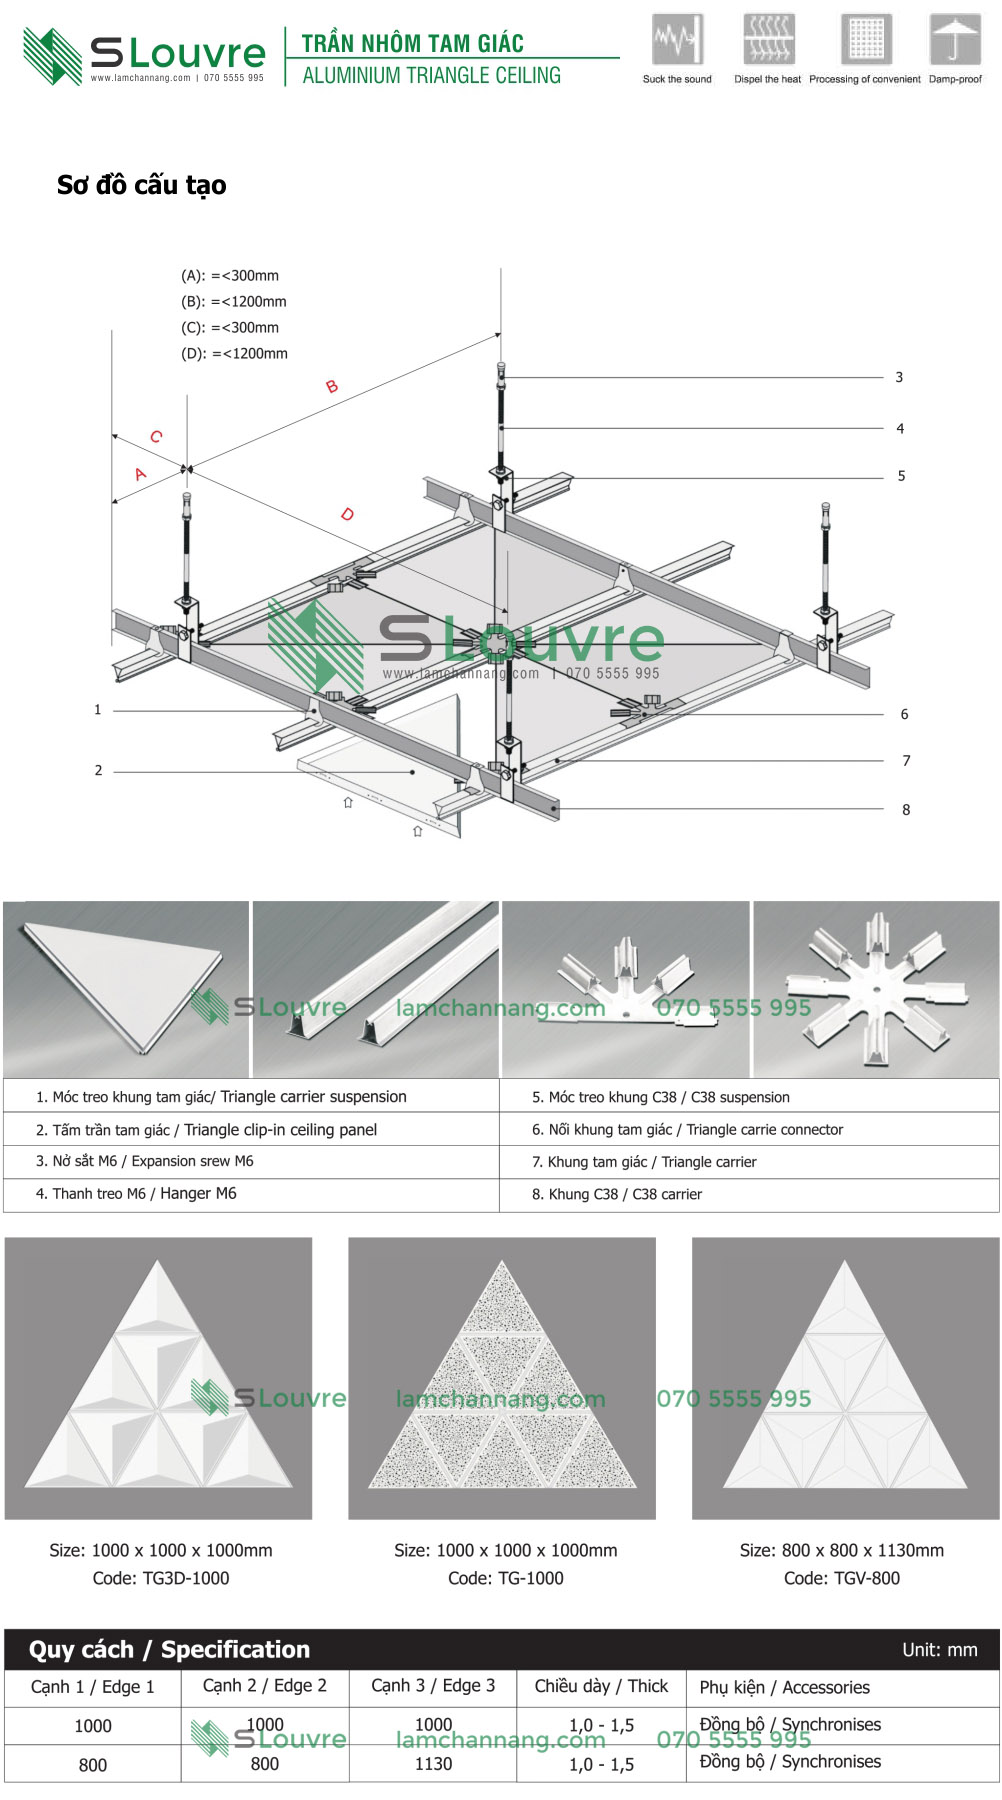 trần nhôm tam giác, trần tam giác, trần kim loại tam giác, metal triangle ceiling, aluminium triangle ceiling, trần nhôm, trần kim loại, aluminium ceiling